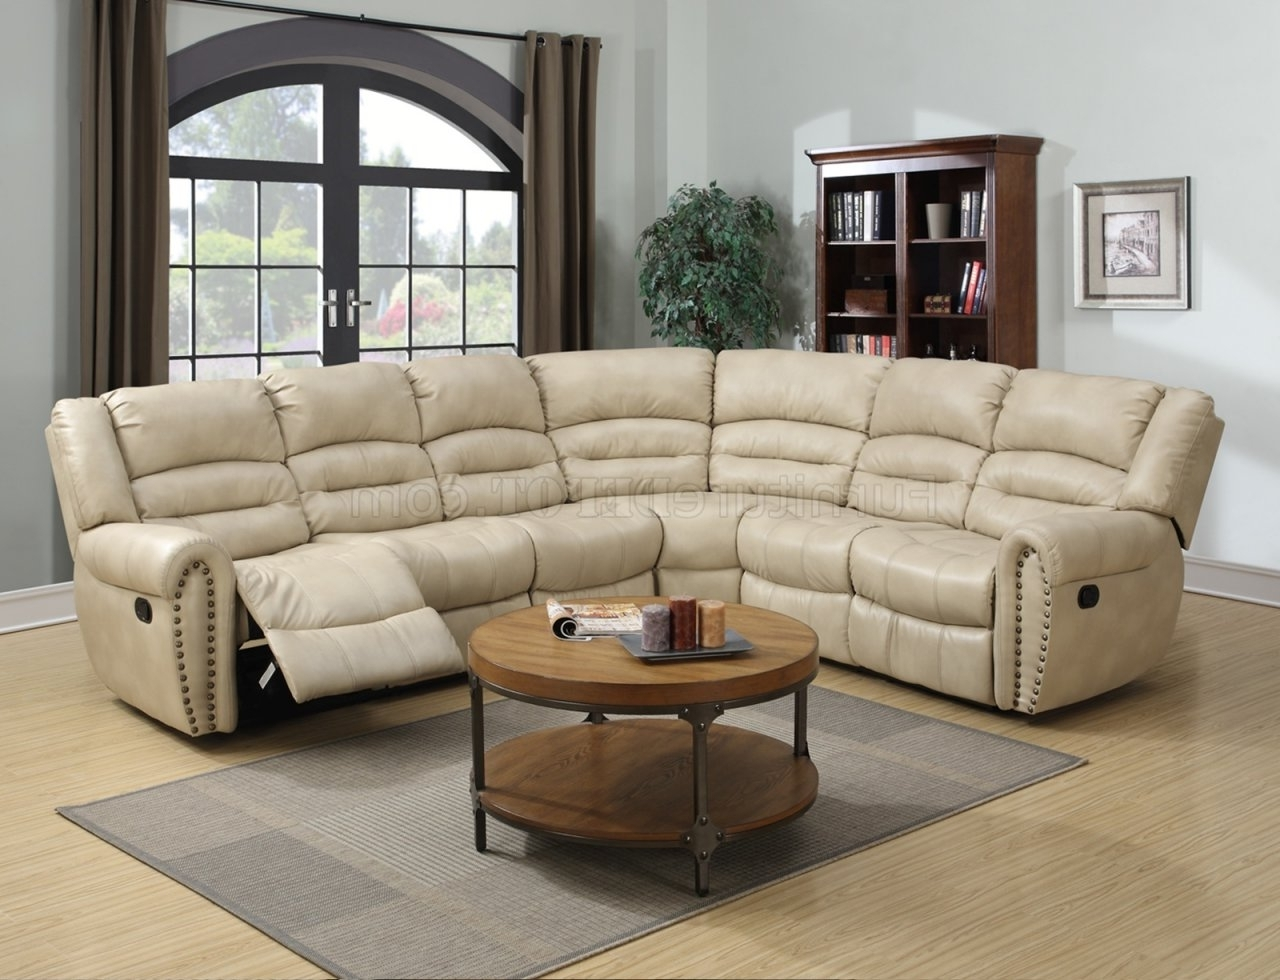 Well Known G687 Motion Sectional Sofa In Beige Bonded Leatherglory Inside Motion Sectional Sofas (View 5 of 20)